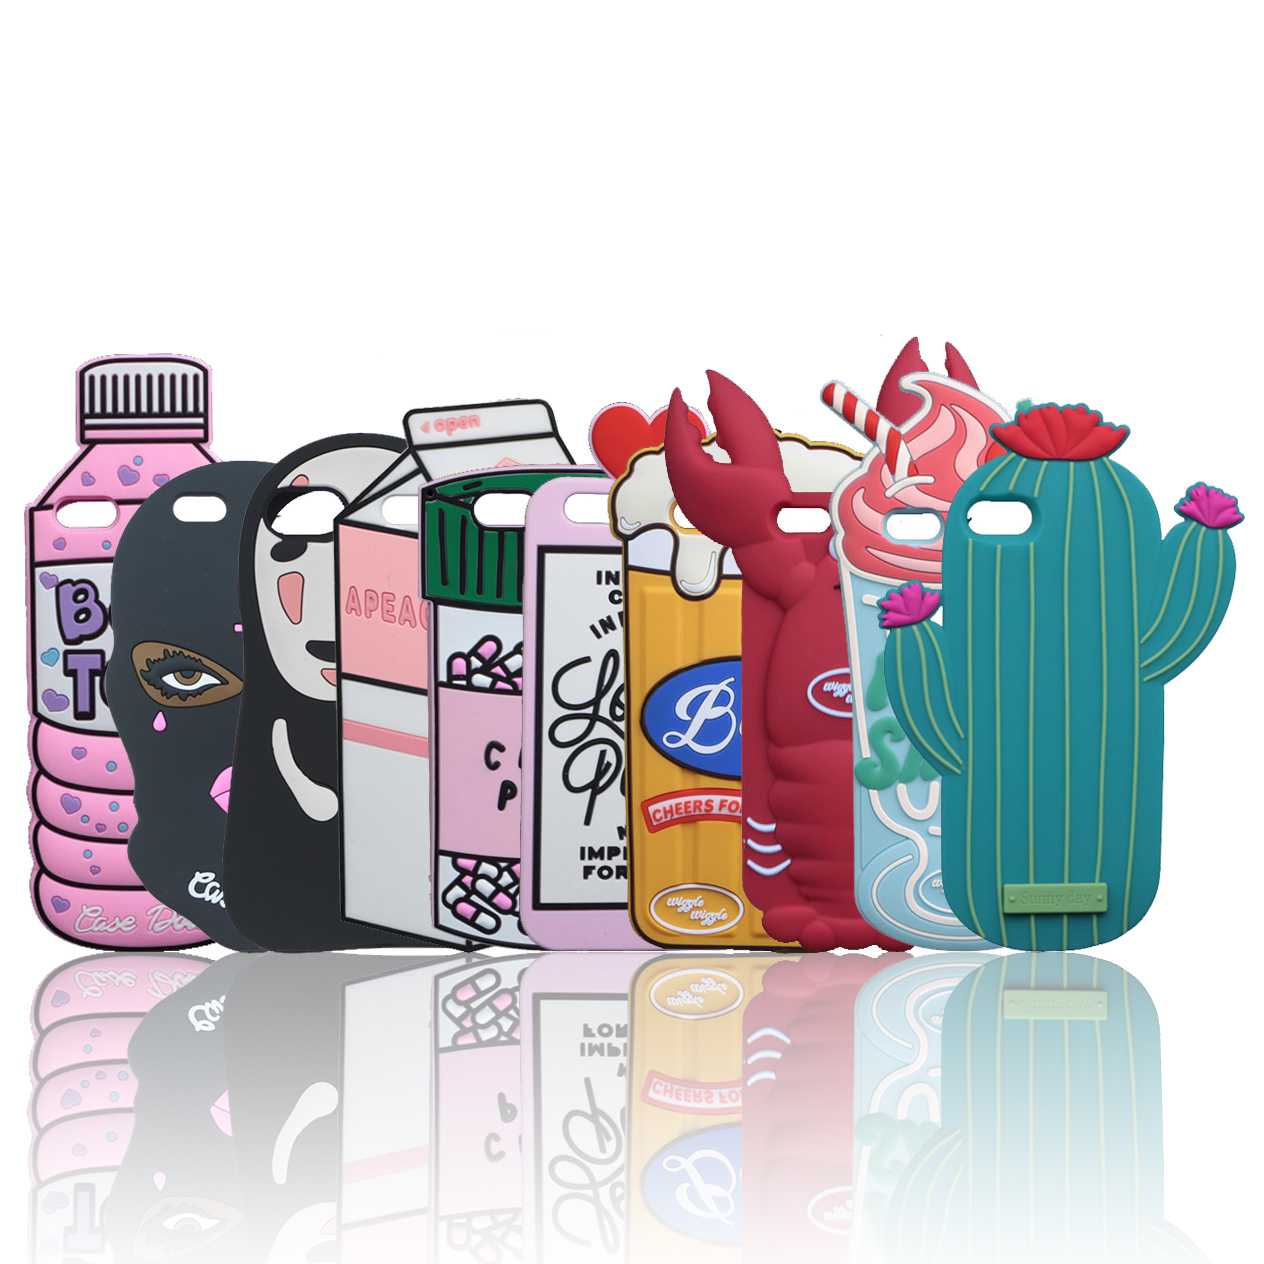 The Case for iPhone 5 5S SE Cases Soft Silicone Back Cover Case Dolls Chill Pills Poison Spray Boys Tears Kakao Beer Hello Kitty(China)